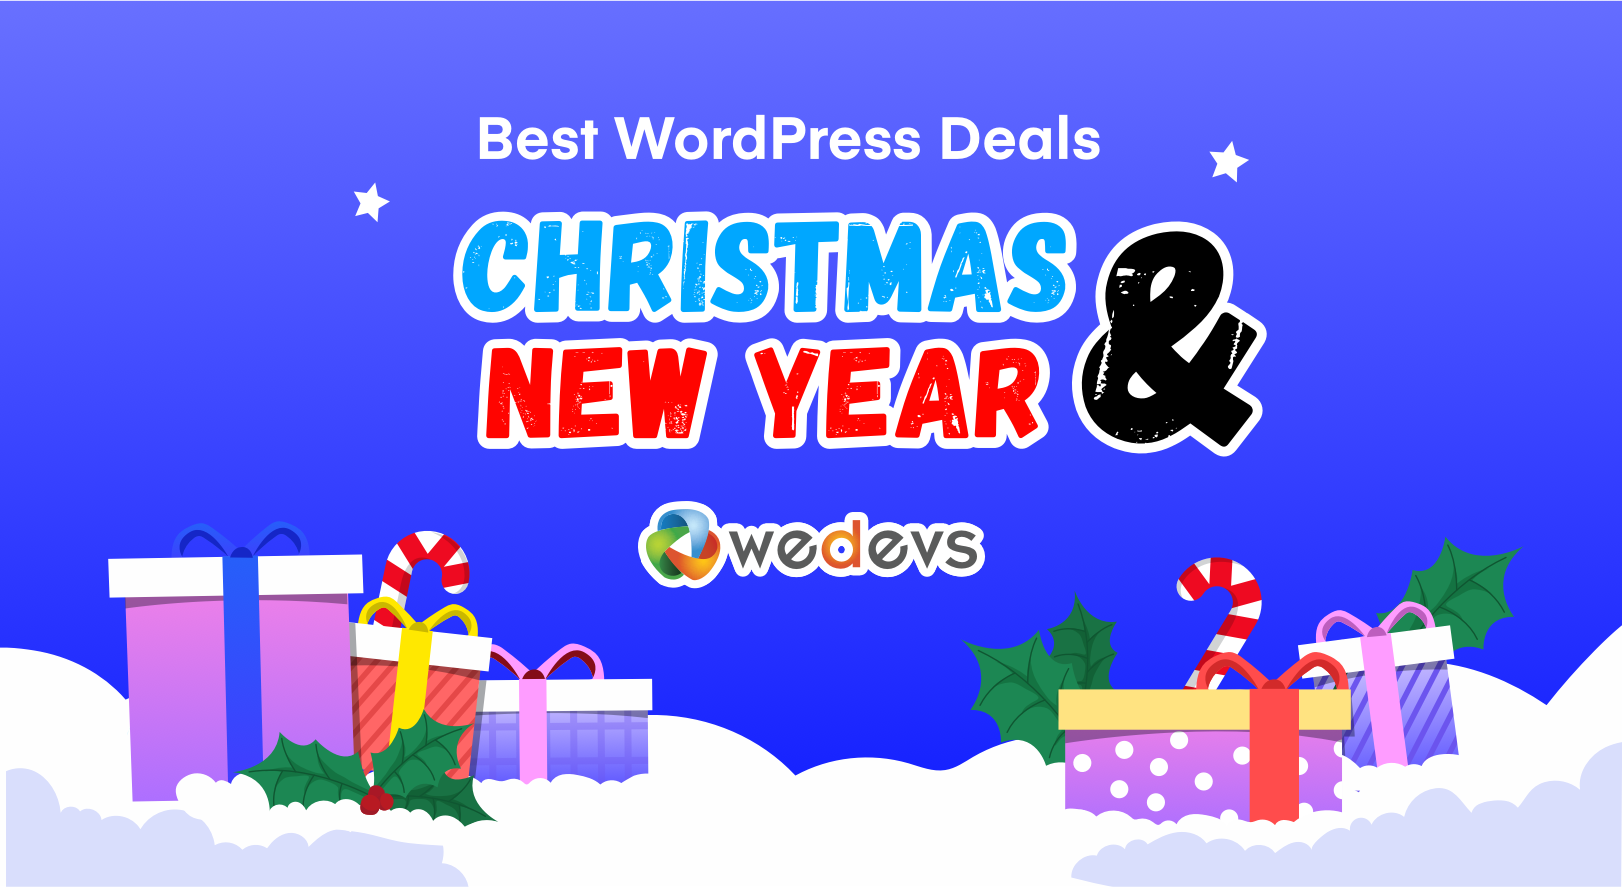 Best WordPress Christmas & New Year Deals